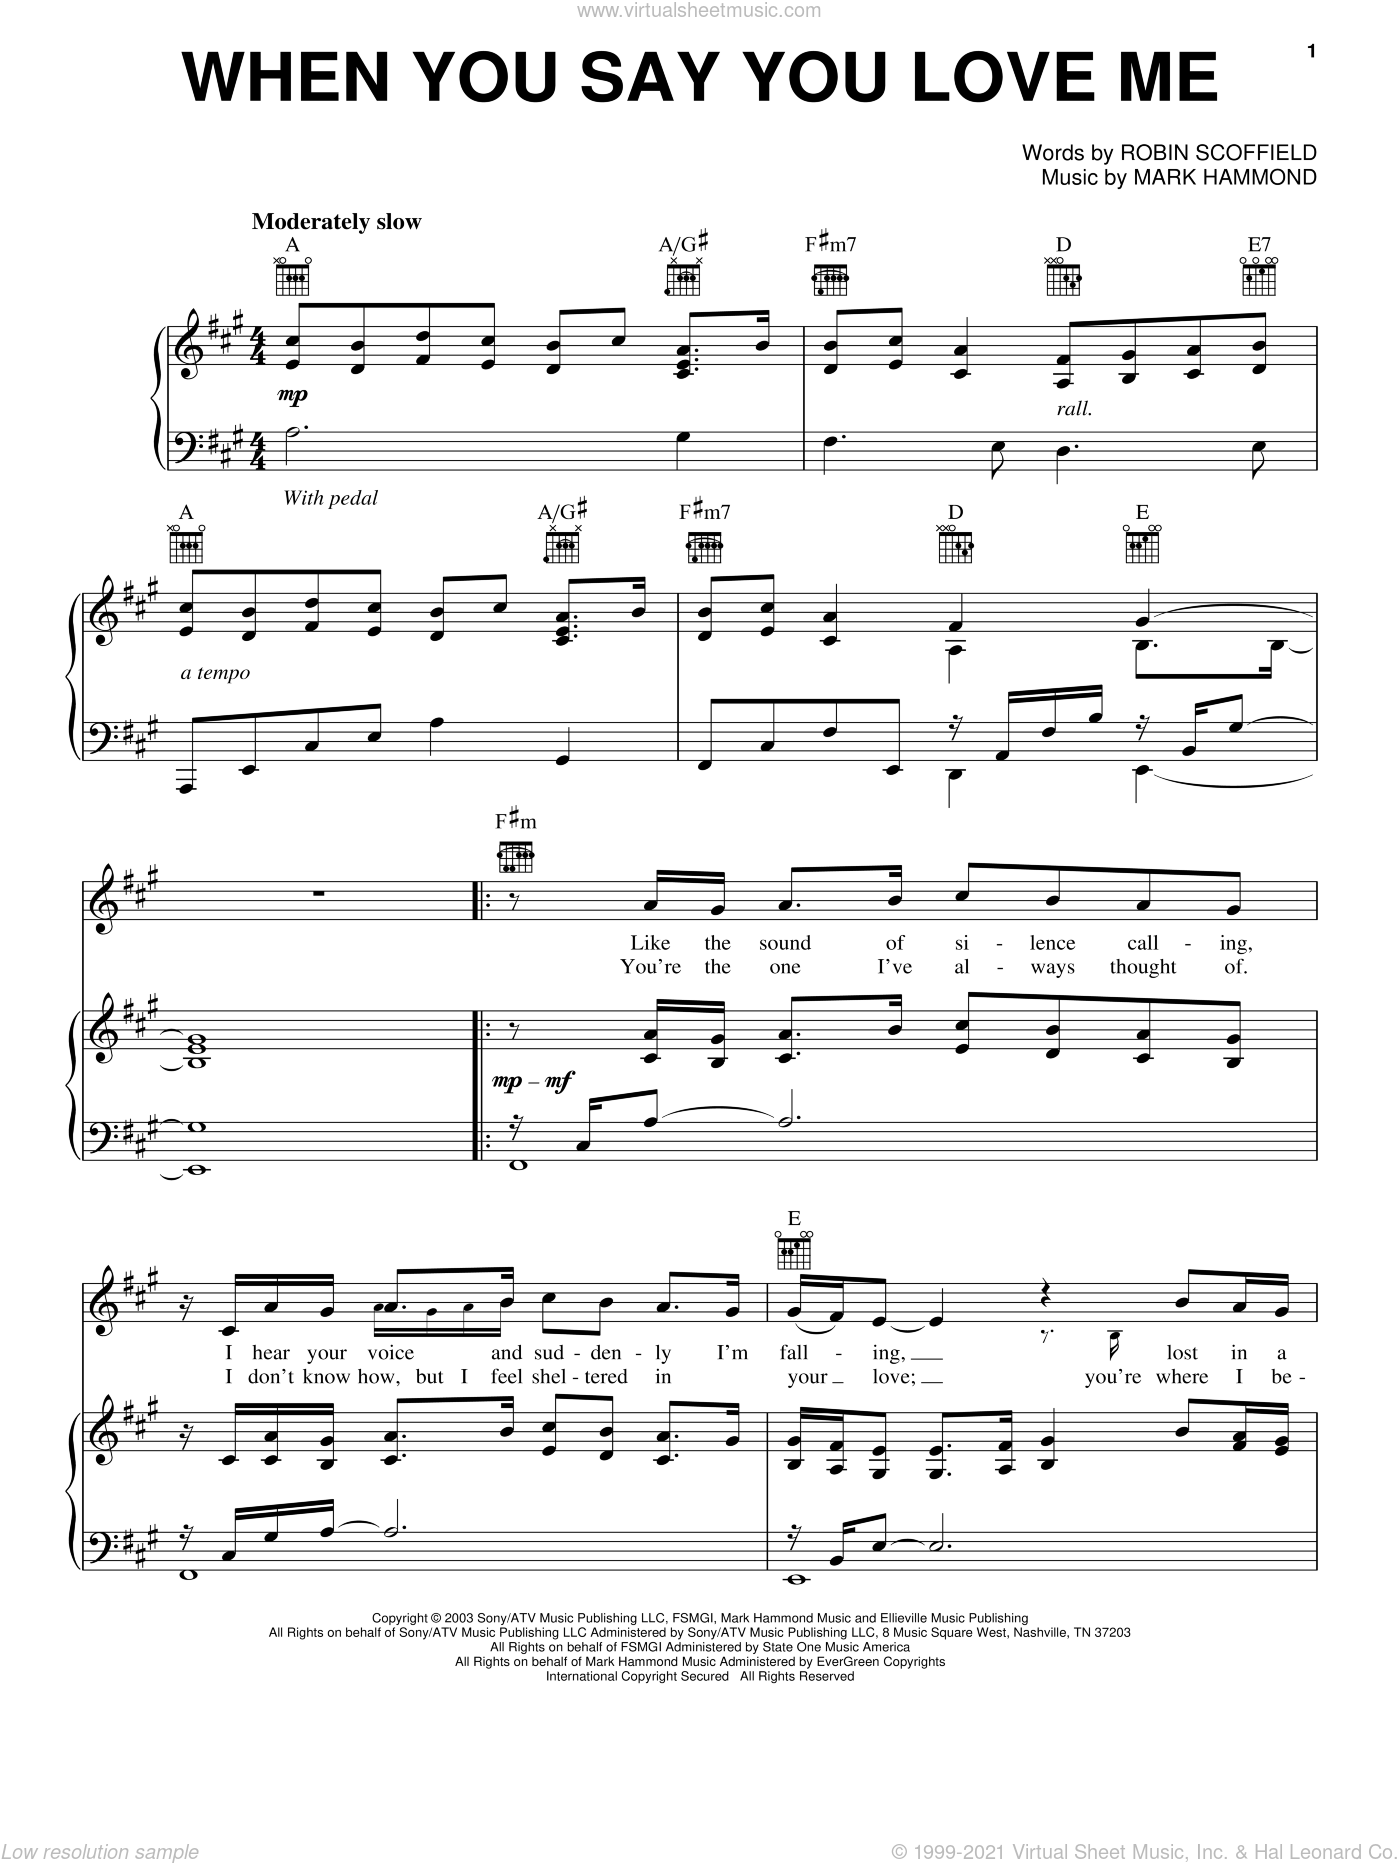 When You Say You Love Me sheet music for voice, piano or guitar by Robin Scoffield, Josh Groban and Mark Hammond. Score Image Preview.